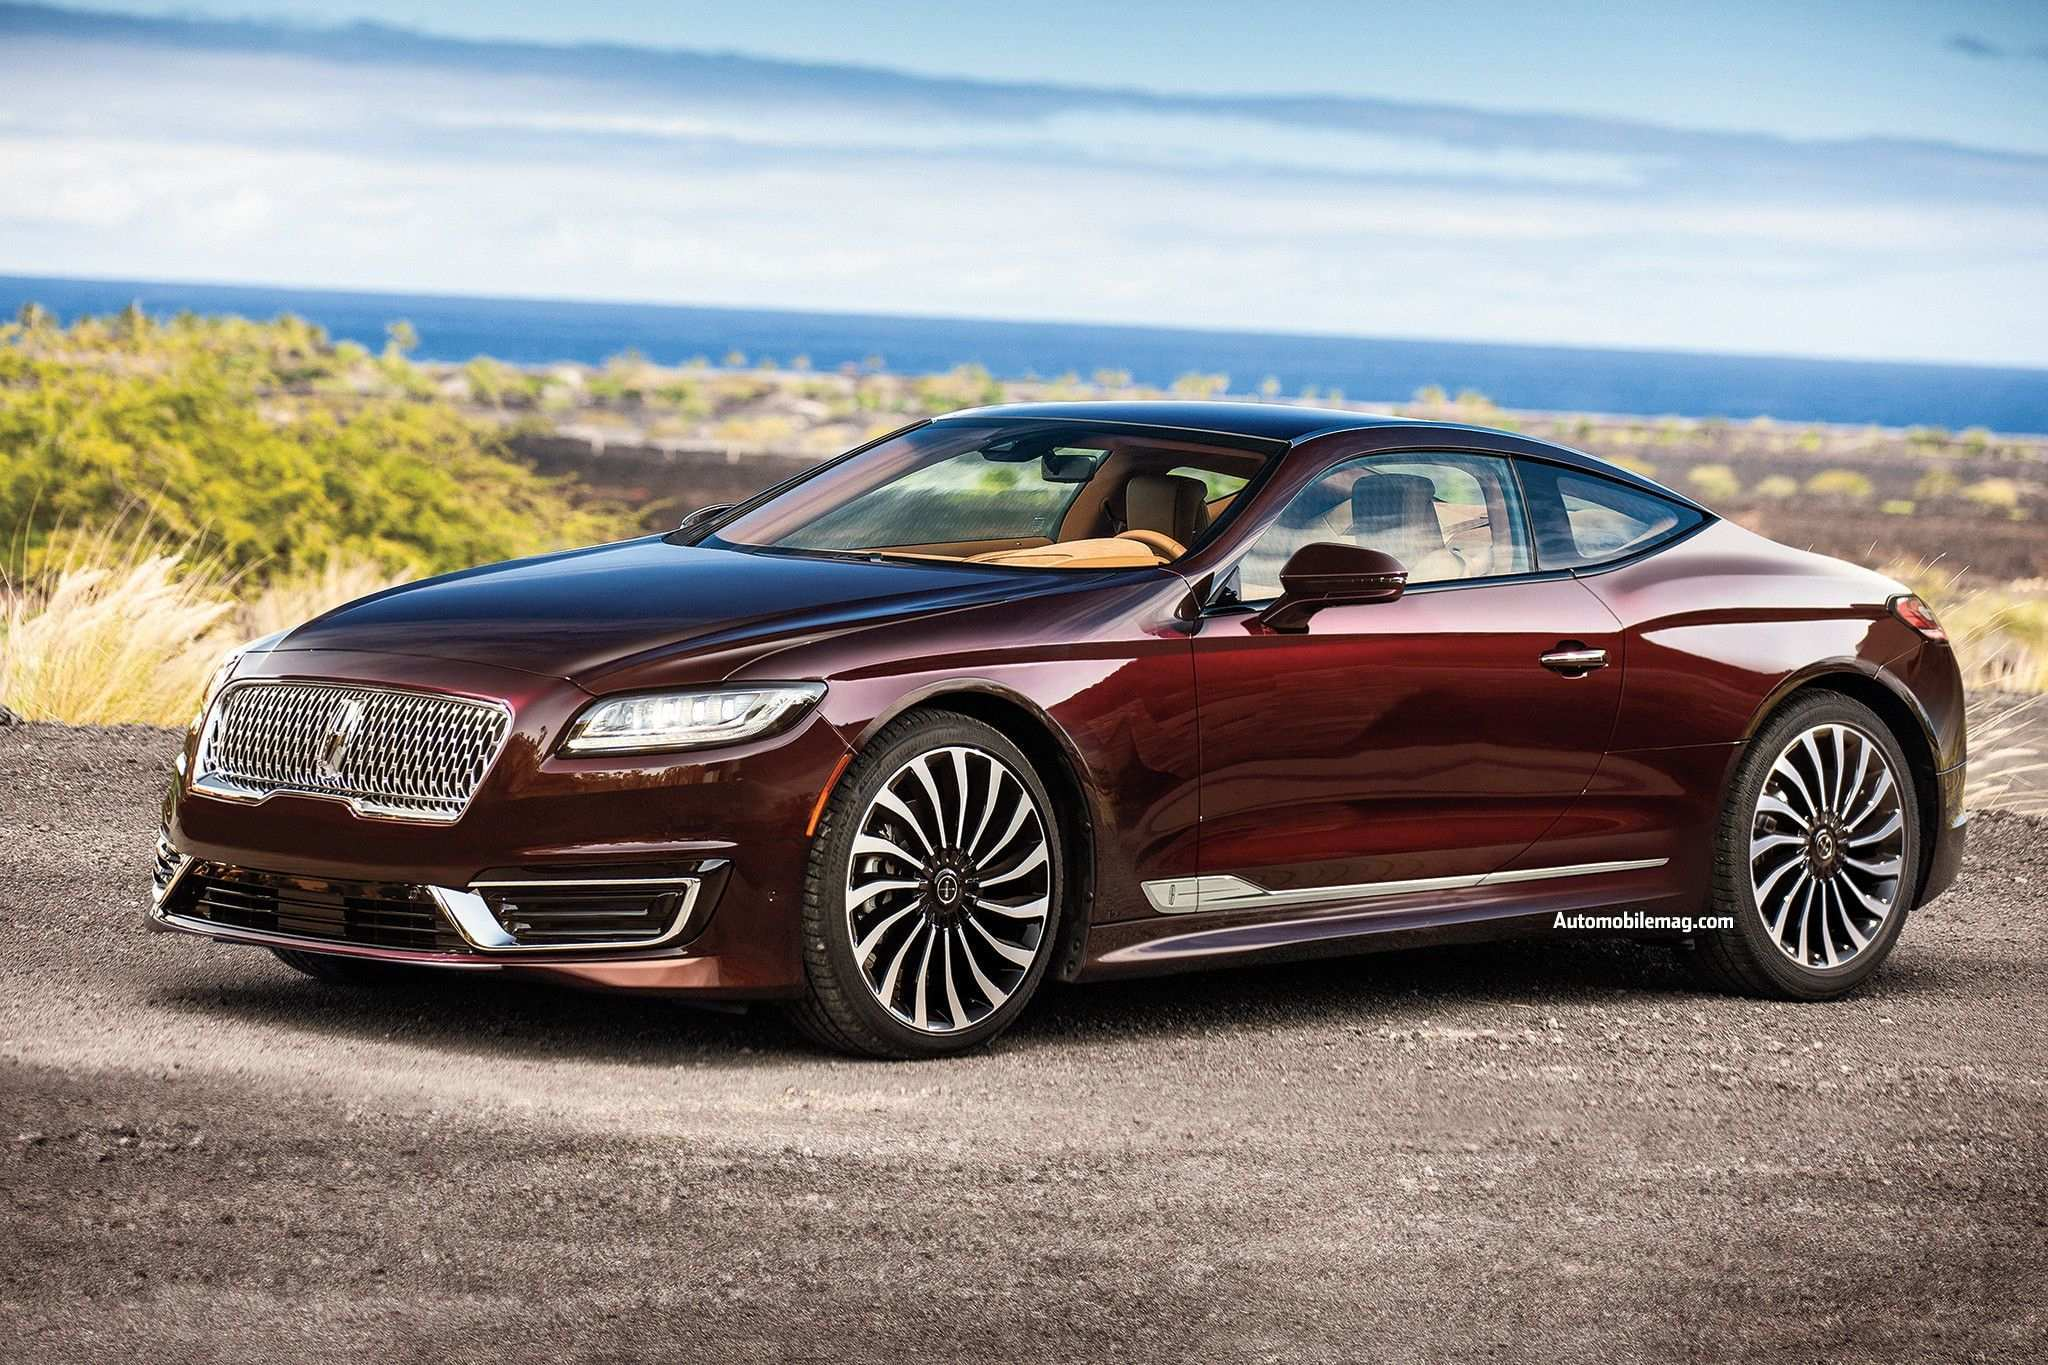 19 All New 2020 The Lincoln Continental Rumors